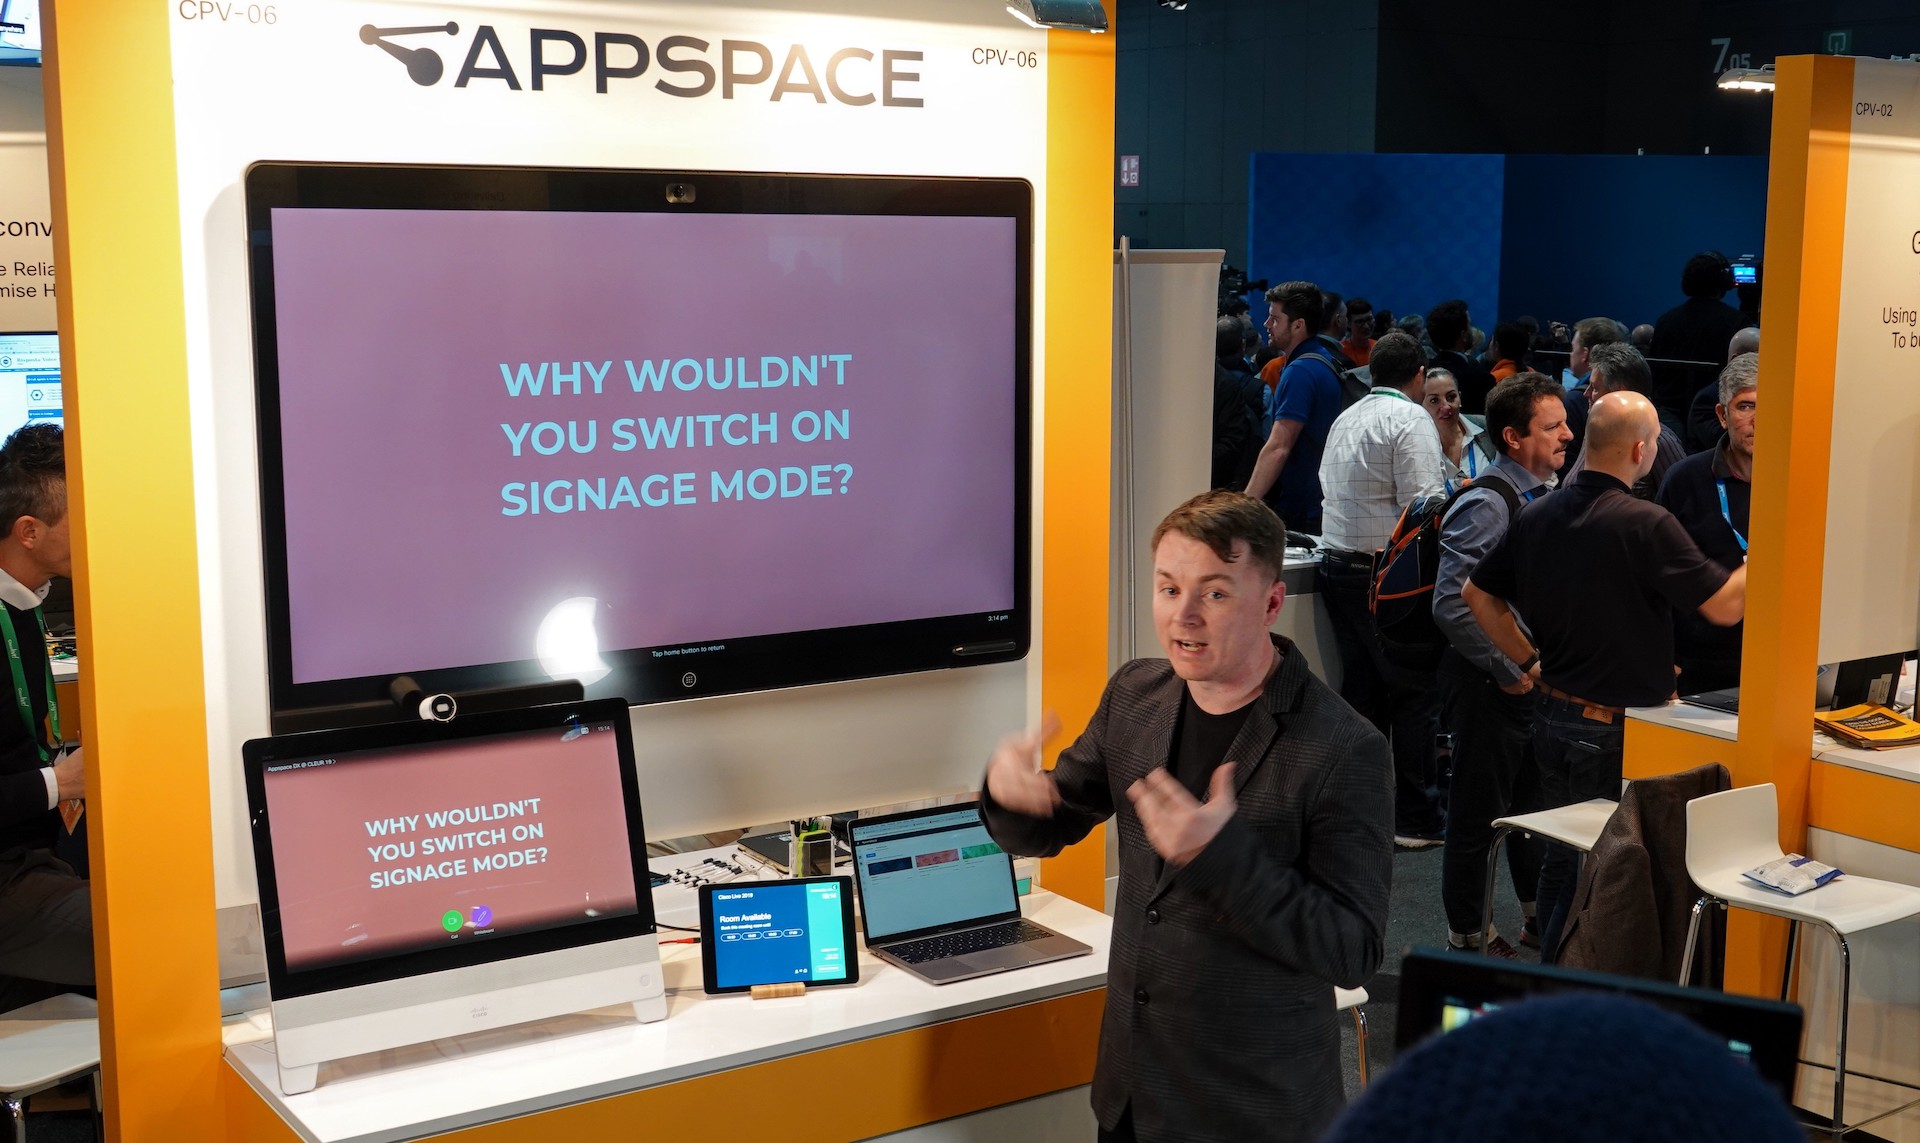 cisco collaboration signage mode alerts appspace singlewire